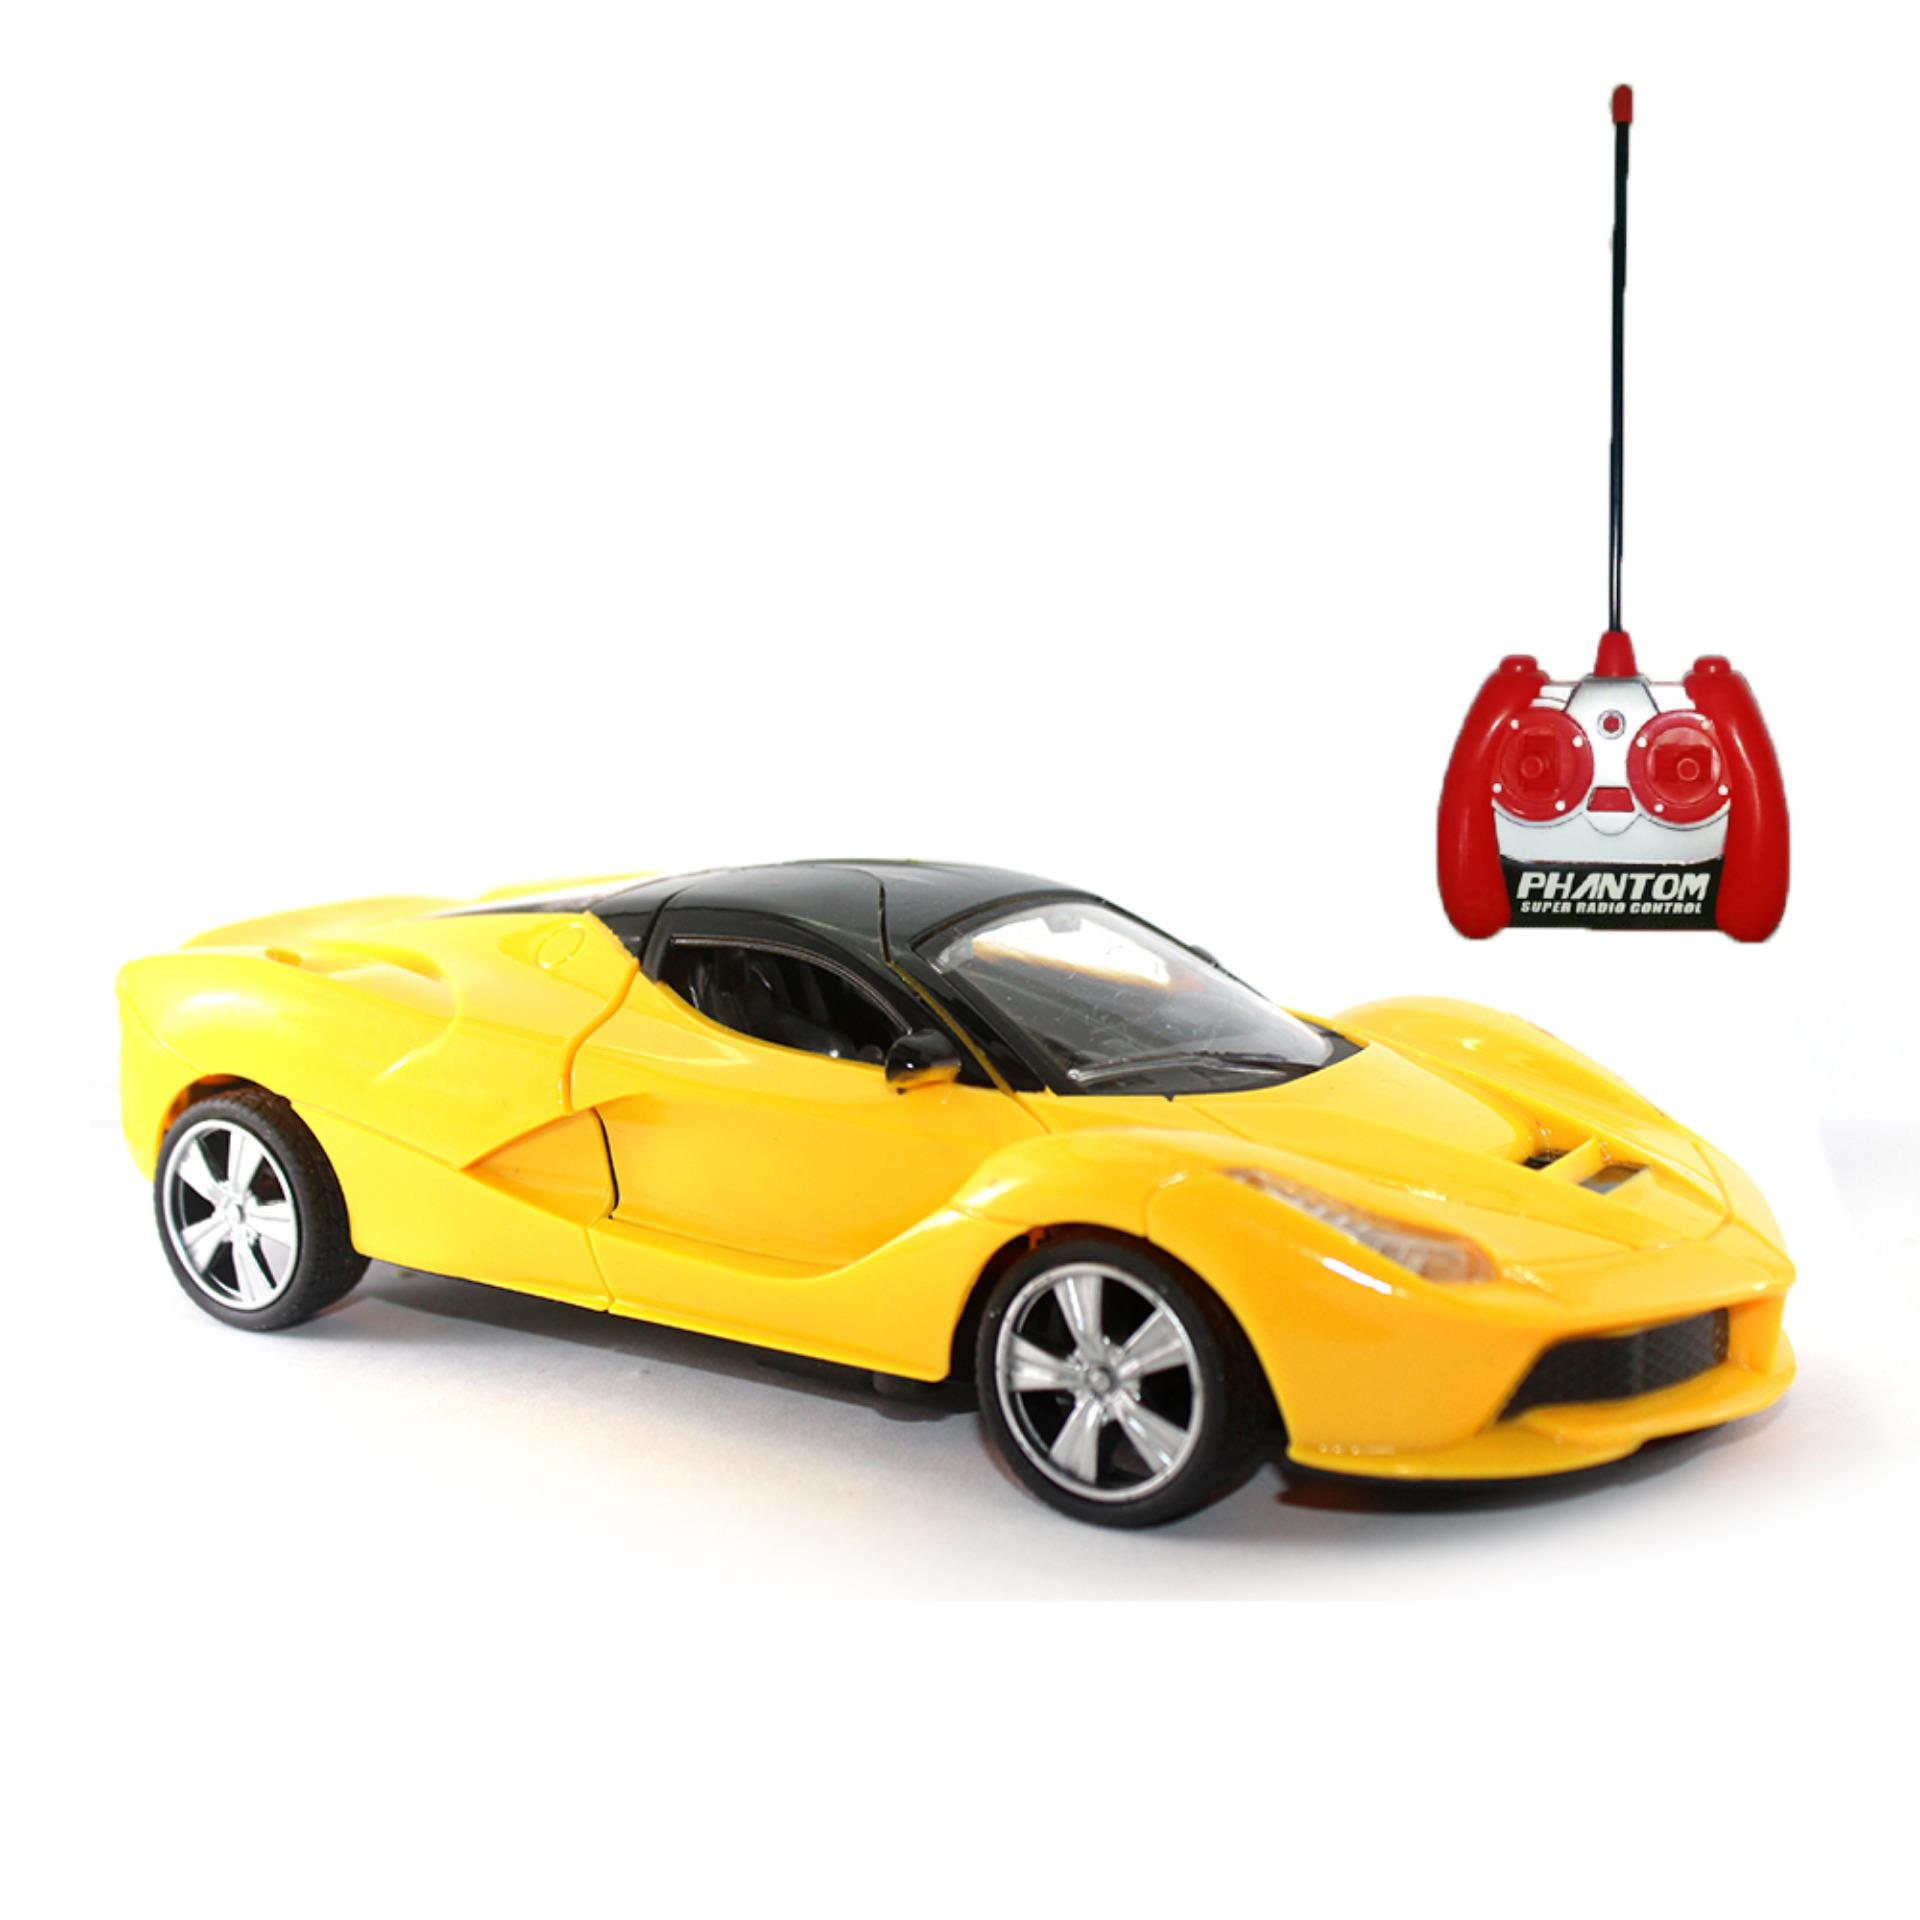 ... Mainan Remote Control Ferrari Supercar - Yellow ...